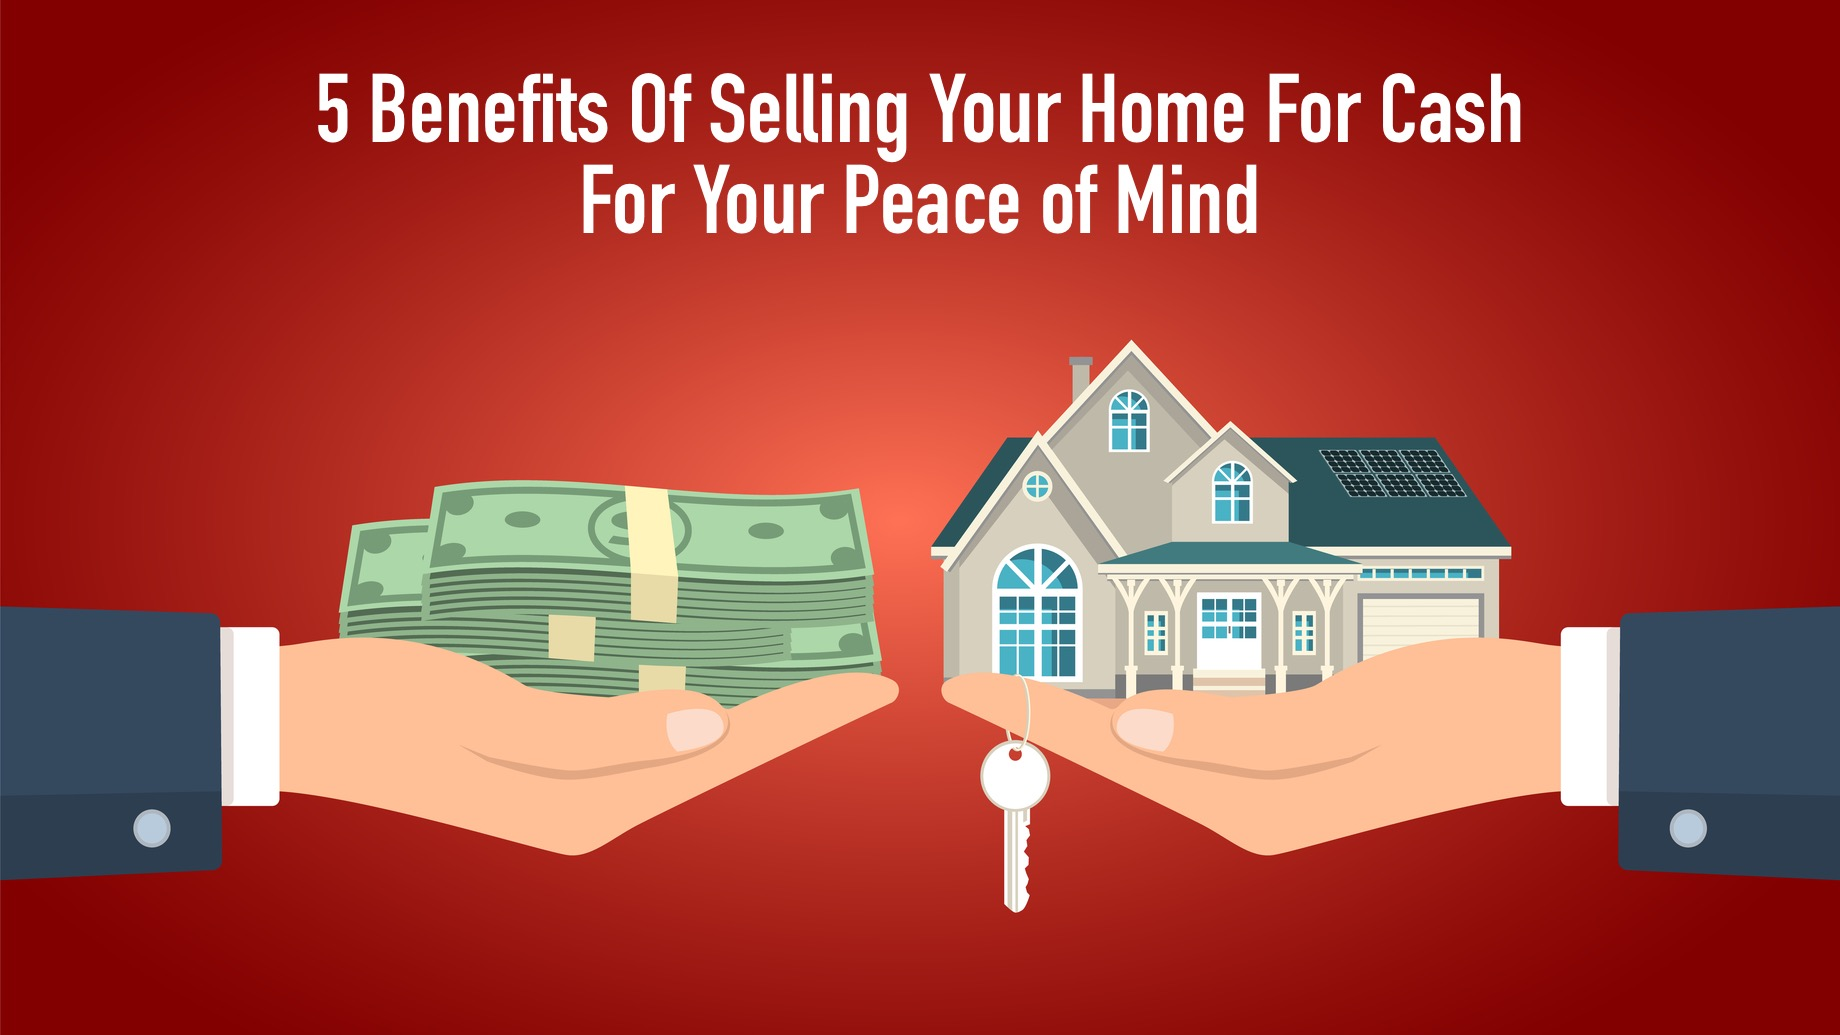 5 Benefits Of Selling Your Home For Cash For Your Peace of Mind